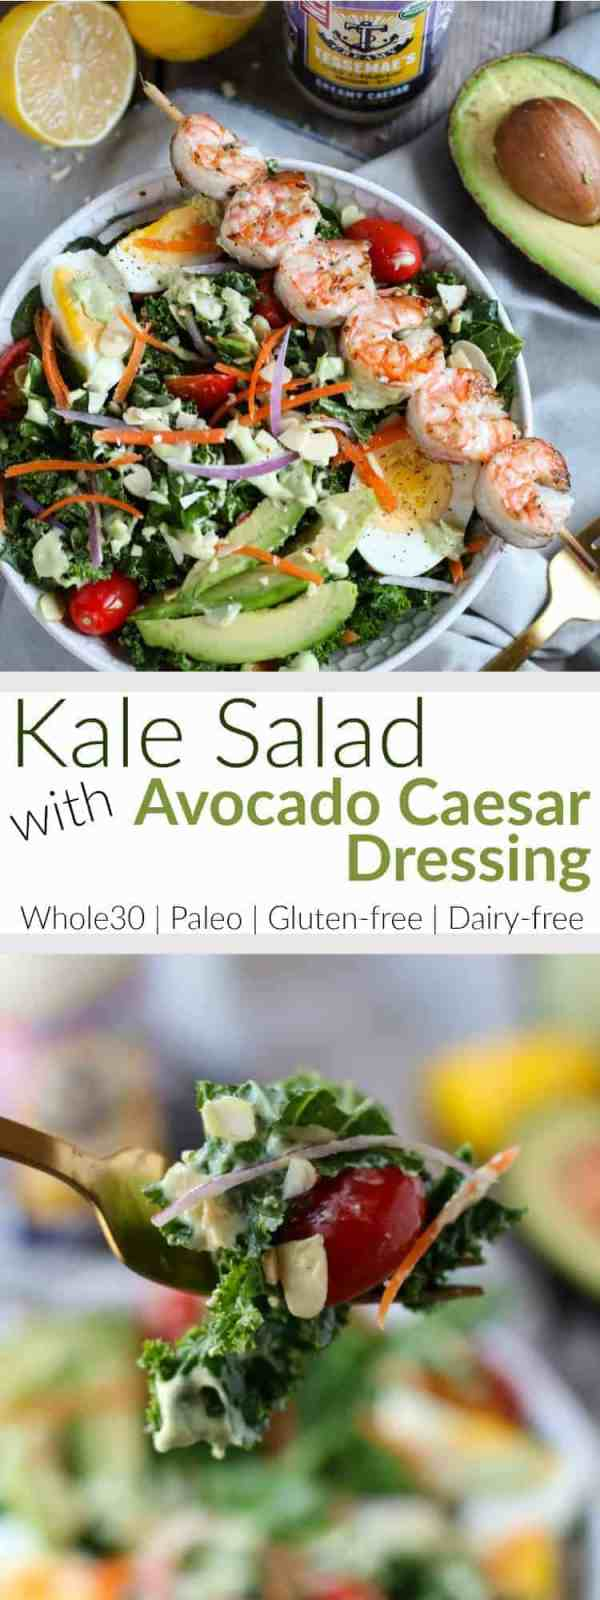 Kale Salad with Avocado Caesar Dressing | The classic Caesar Salad gets a healthy makeover in this Whole30-friendly version made with kale, fresh veggies and hard-boiled egg | therealfoodrds.com